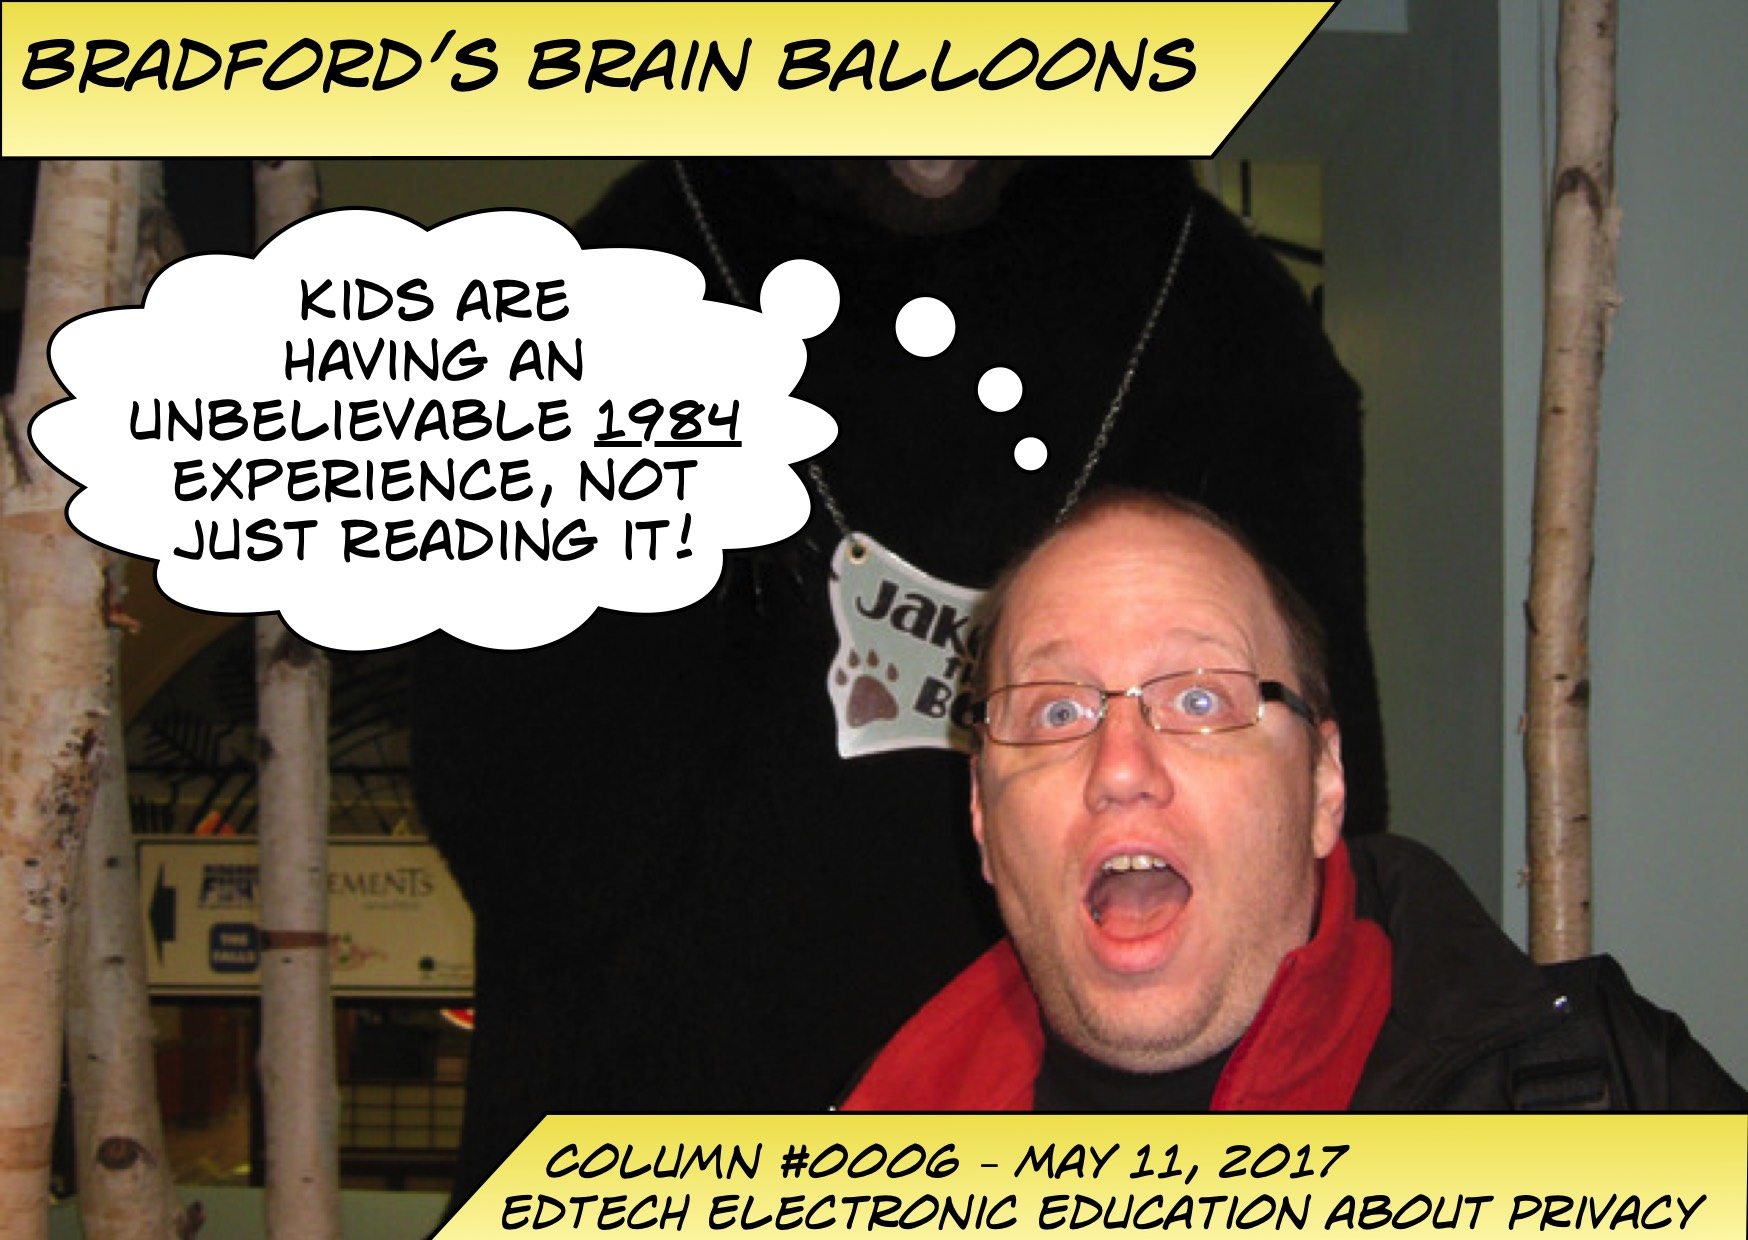 Bradford_Brain_Balloons_0008 EdTech Electronic Education About Privacy - Kids are having an unbelievable 1984 experience, not just reading it!